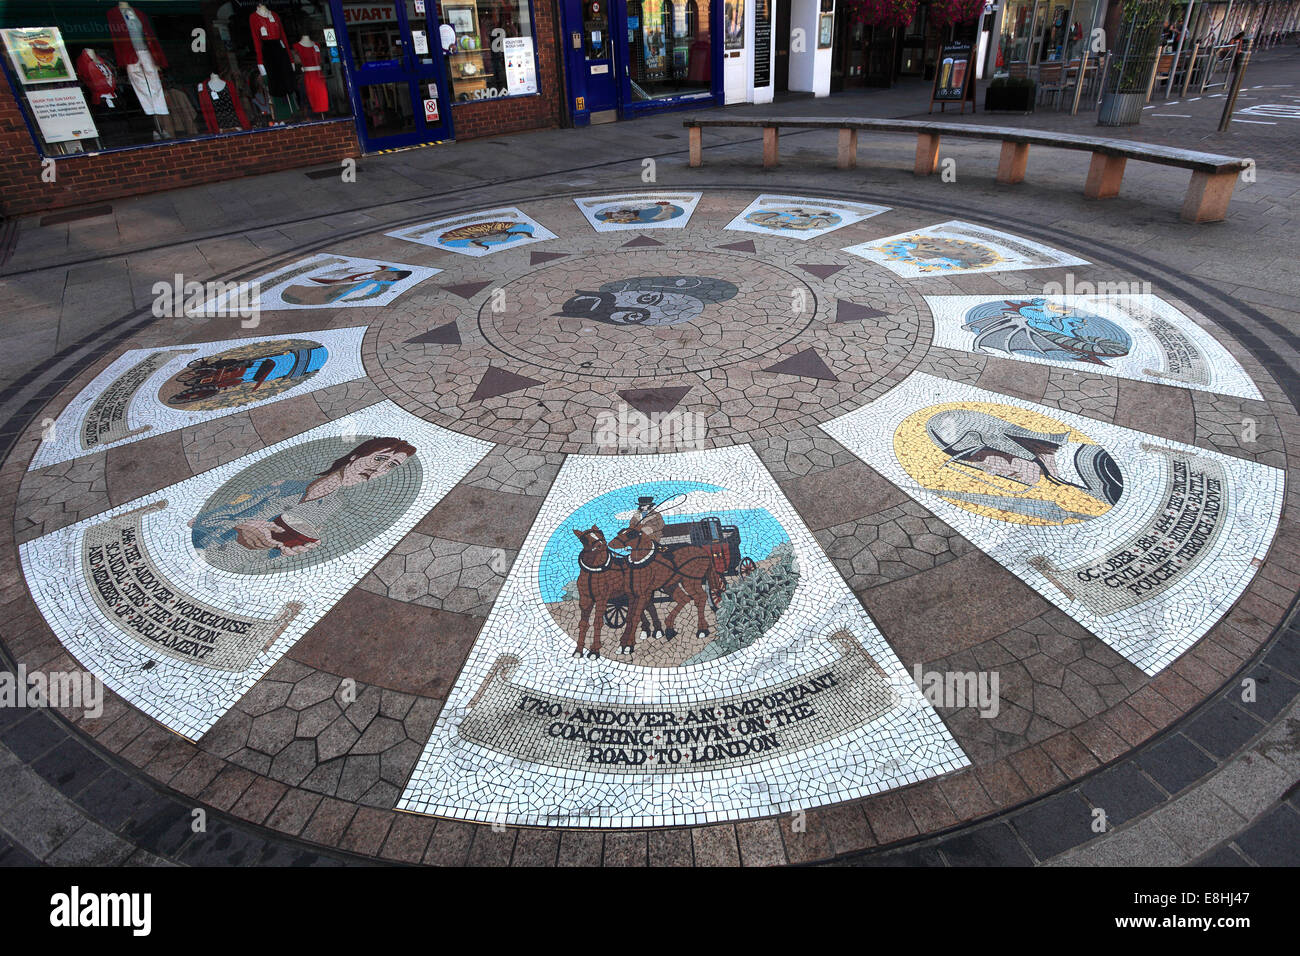 Pavement Mosaic, Andover town, Hampshire County; England; Britain, UK - Stock Image